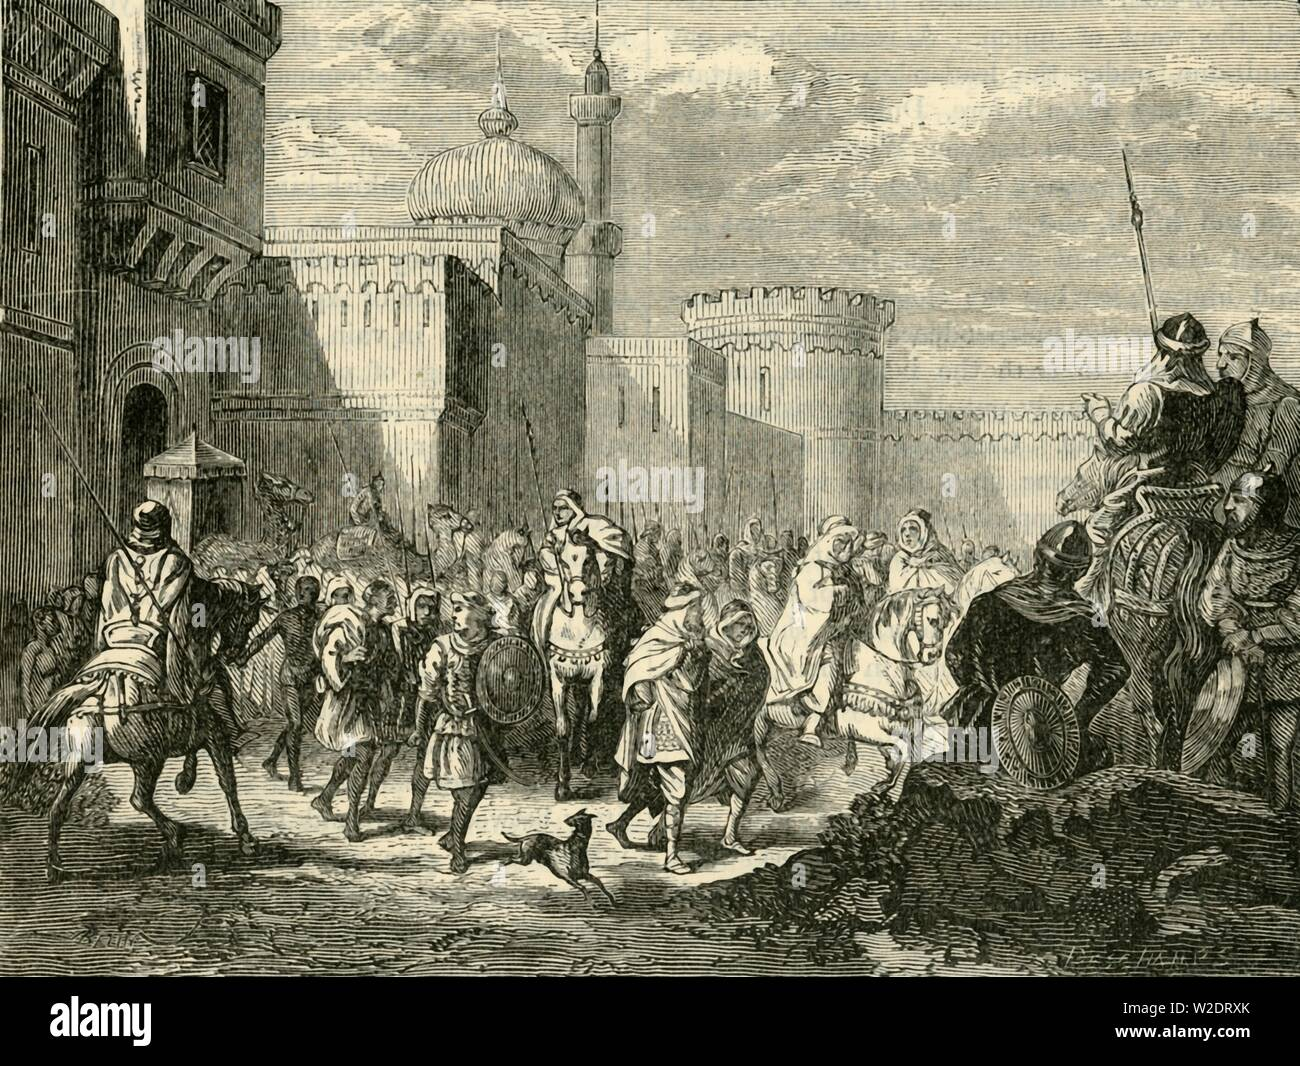 """'The Saracens Leaving Narbonne, Restored to the Franks', ( (737AD), 1890. The Saracens defeated by Charlemagne in 737AD. From """"Cassell's Illustrated Universal History, Vol. III - The Middle Ages"""", by Edmund Ollier. [Cassell and Company, Limited, London, Paris and Melbourne, 1890. ] - Stock Image"""